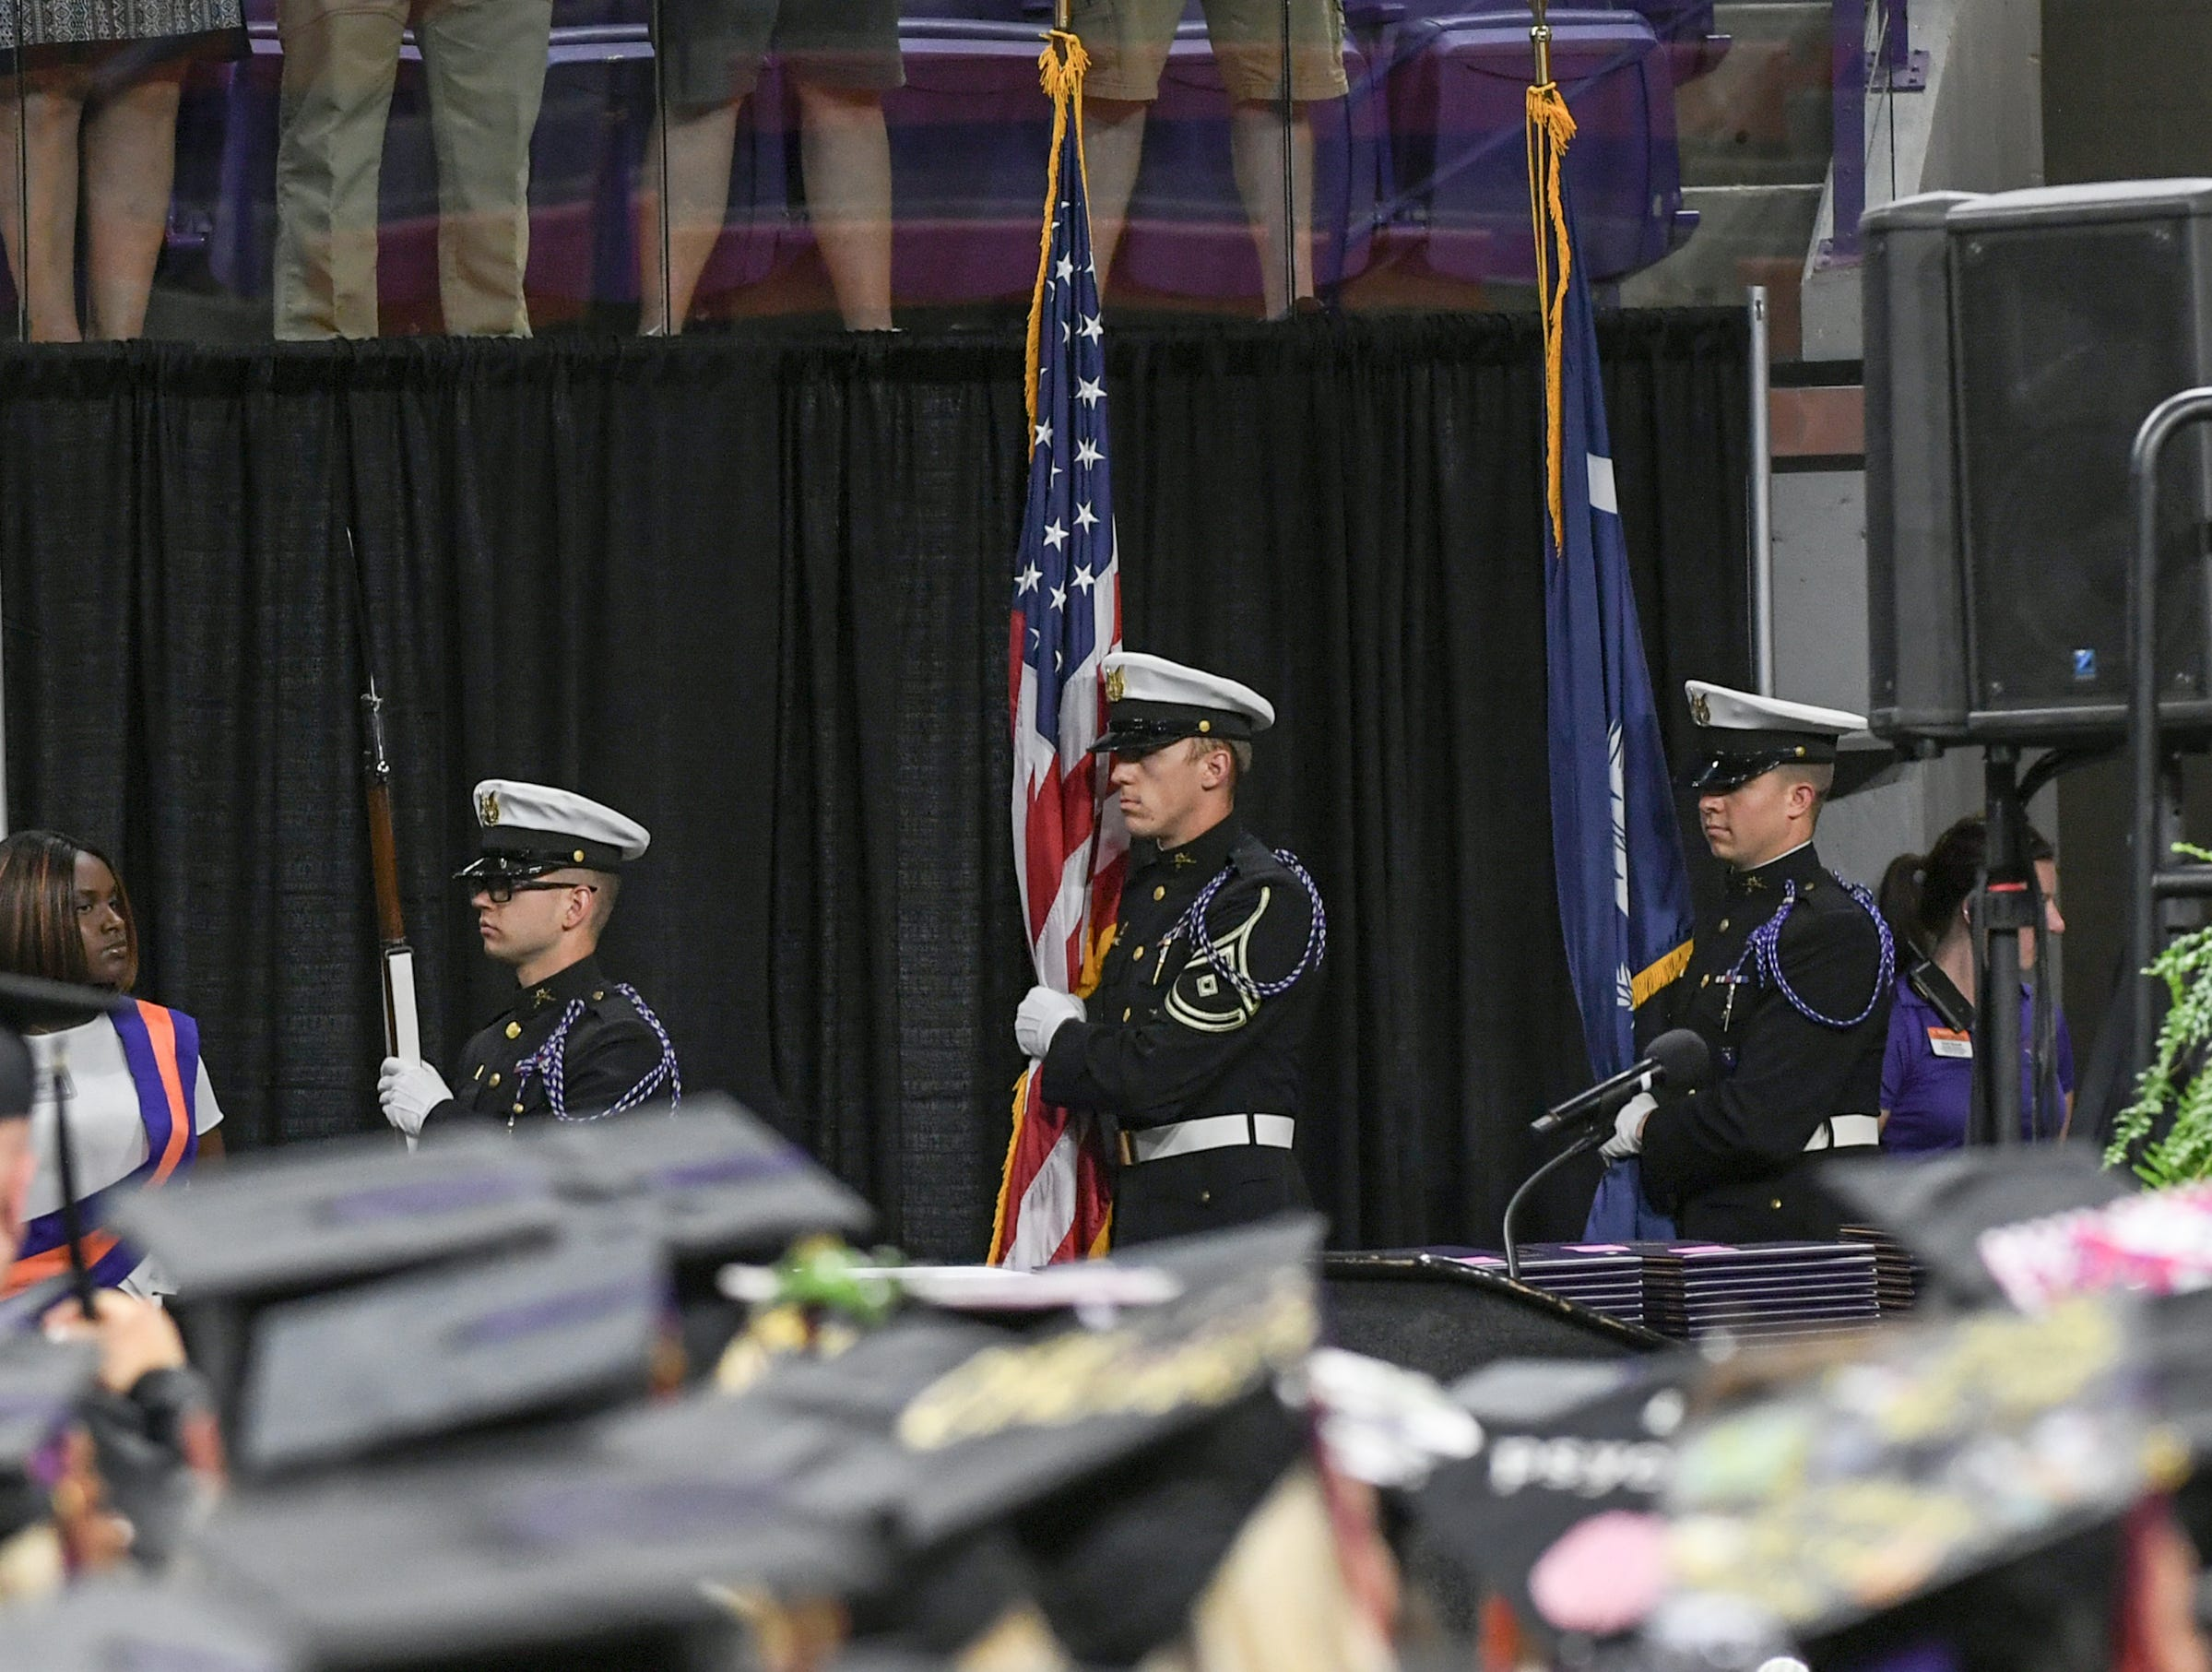 Clemson University Pershing Rifles C4 post colors for the National Anthem during Clemson University commencement ceremonies in Littlejohn Coliseum in Clemson Friday, May 10, 2019.